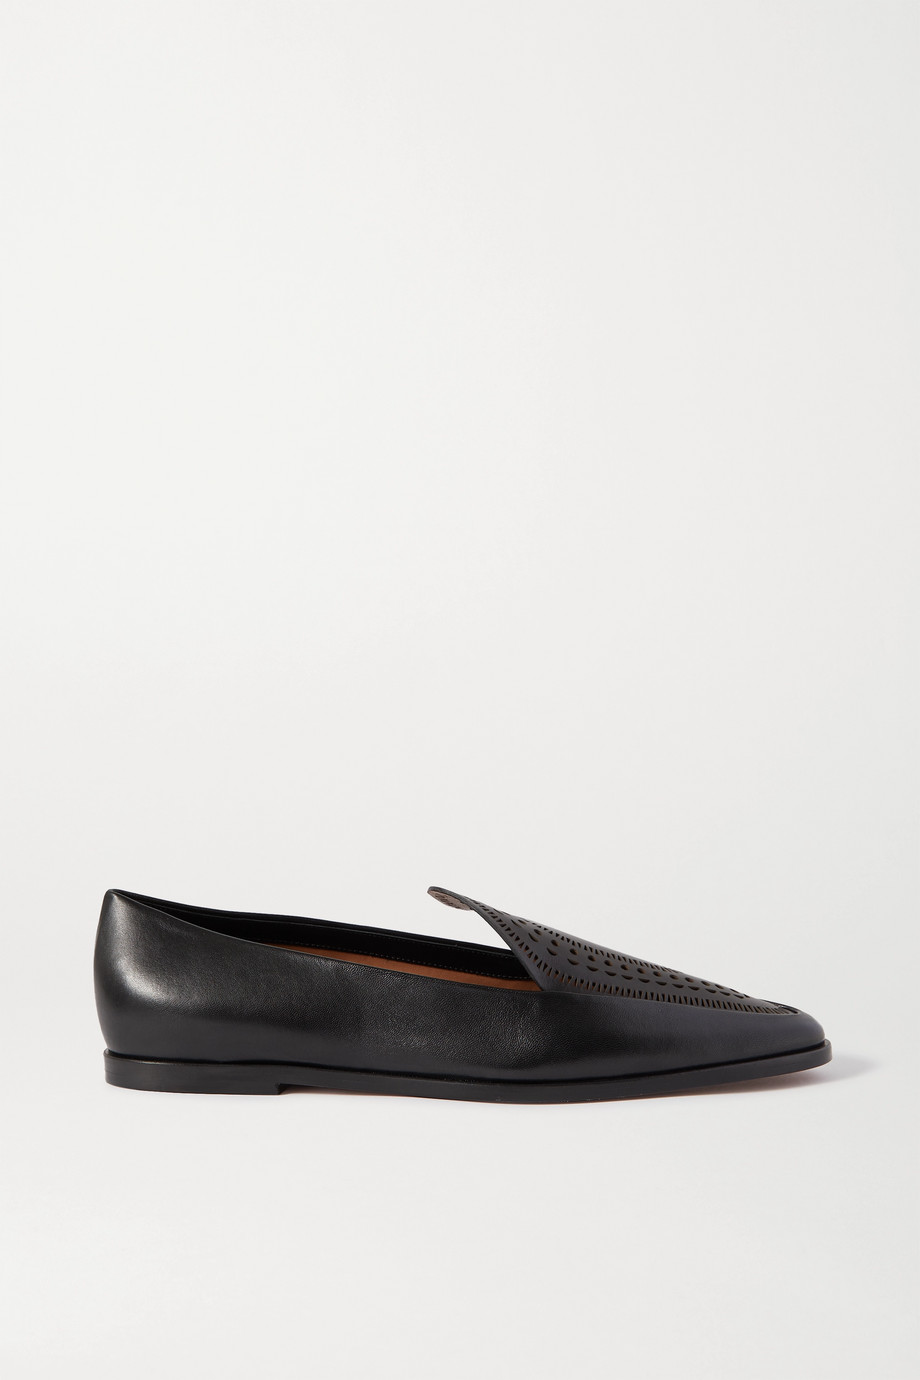 Alaïa Laser-cut leather loafers